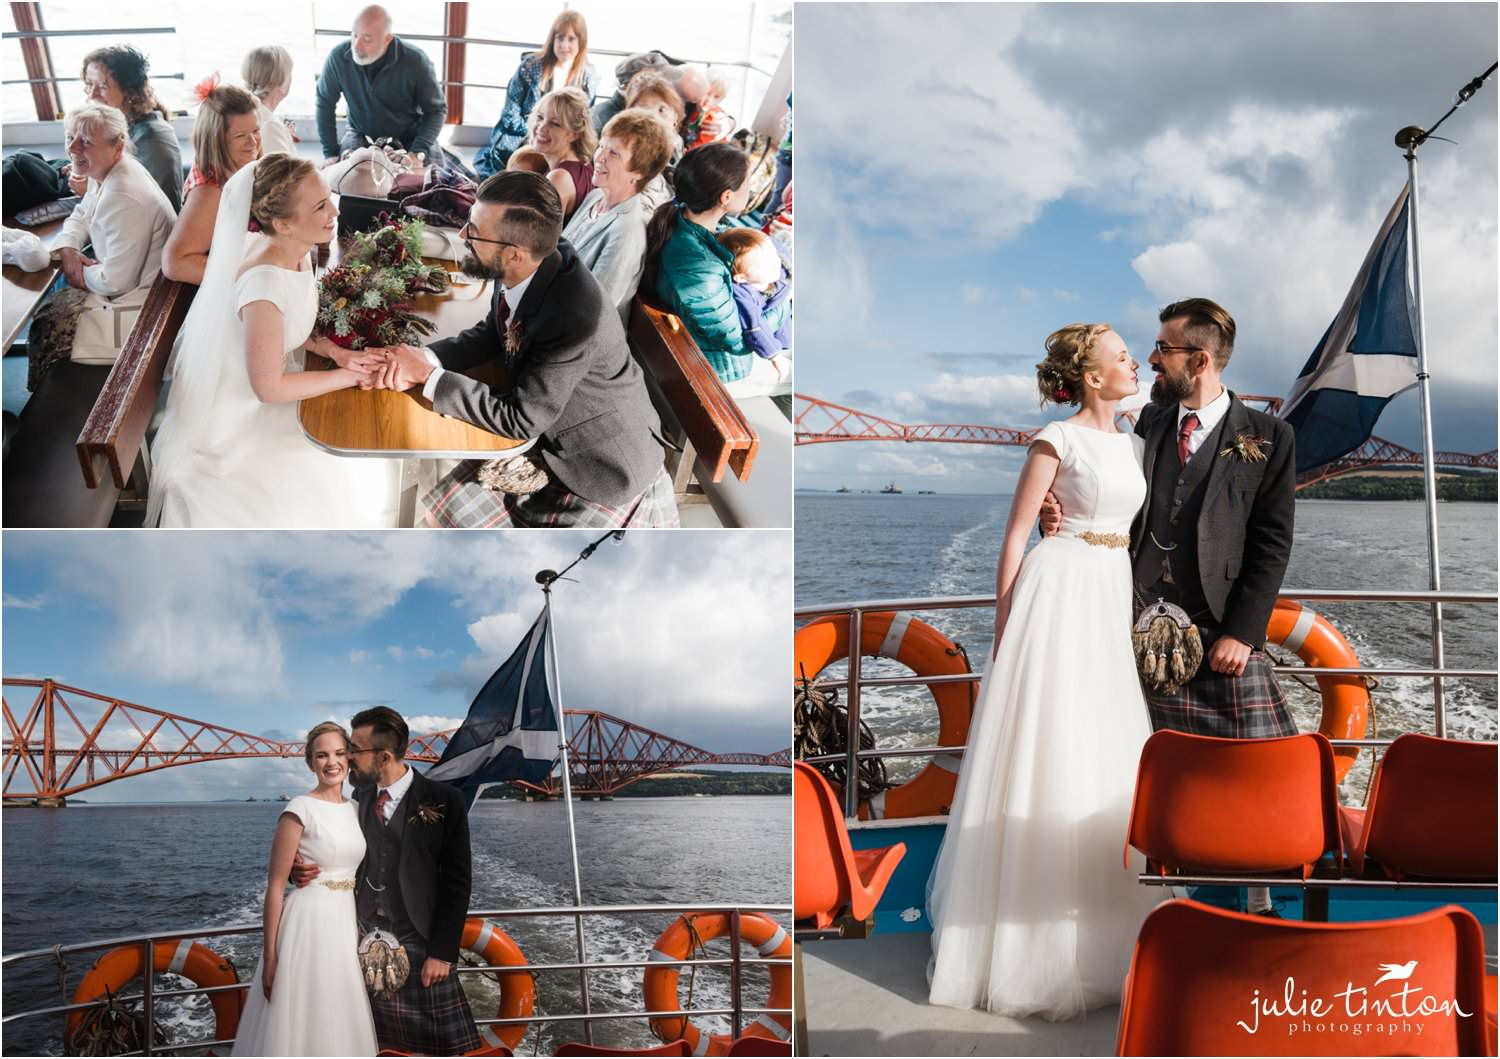 Bride and Groom with guests on Maid of Forth and views of Forth Road Bridge